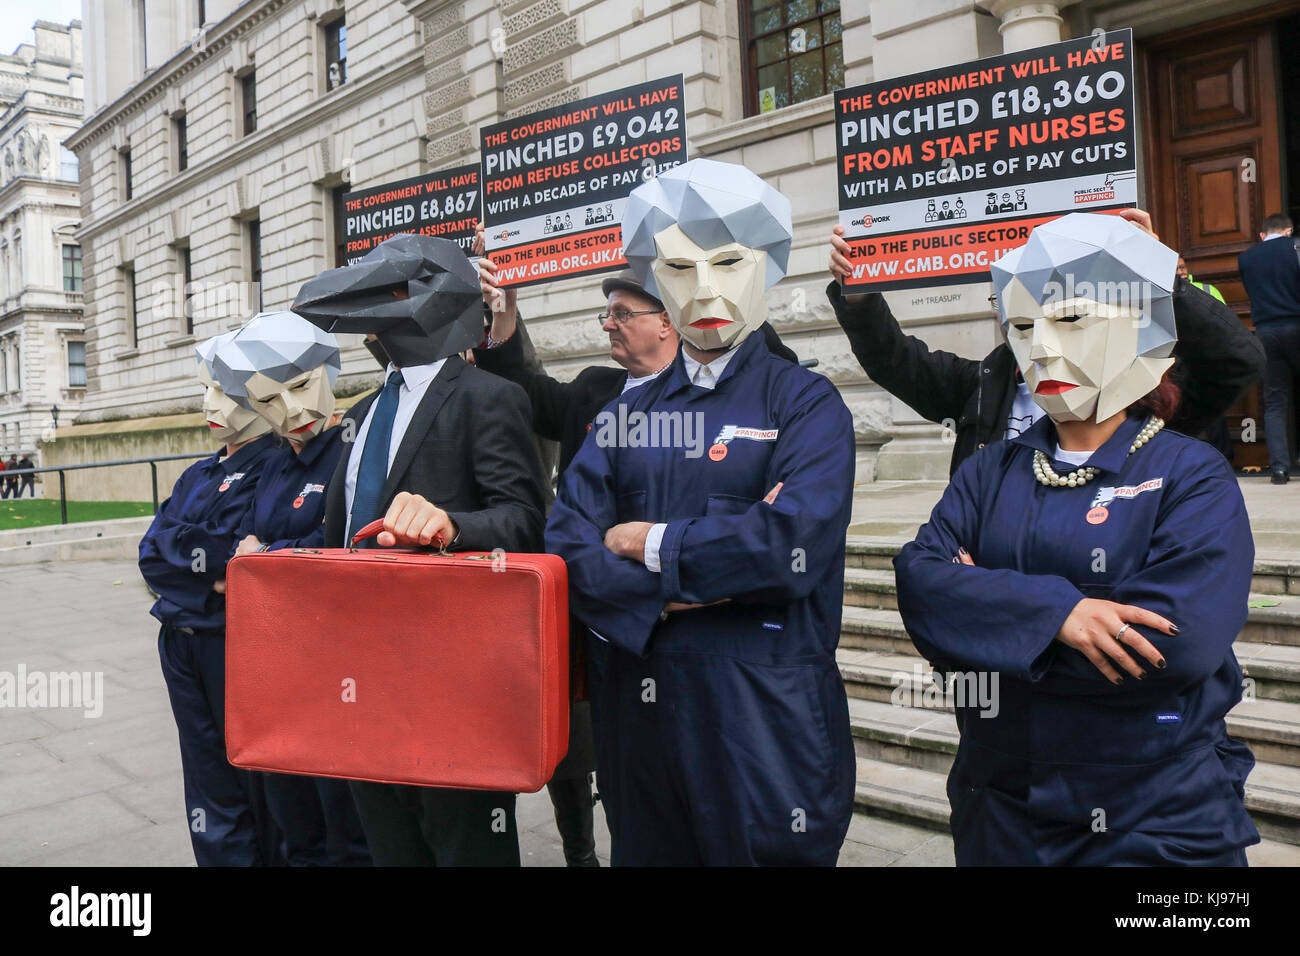 London, UK. 22nd Nov, 2017. GMB Union members  dressed as 'Theresa May' Maybot  memes protest against government - Stock Image